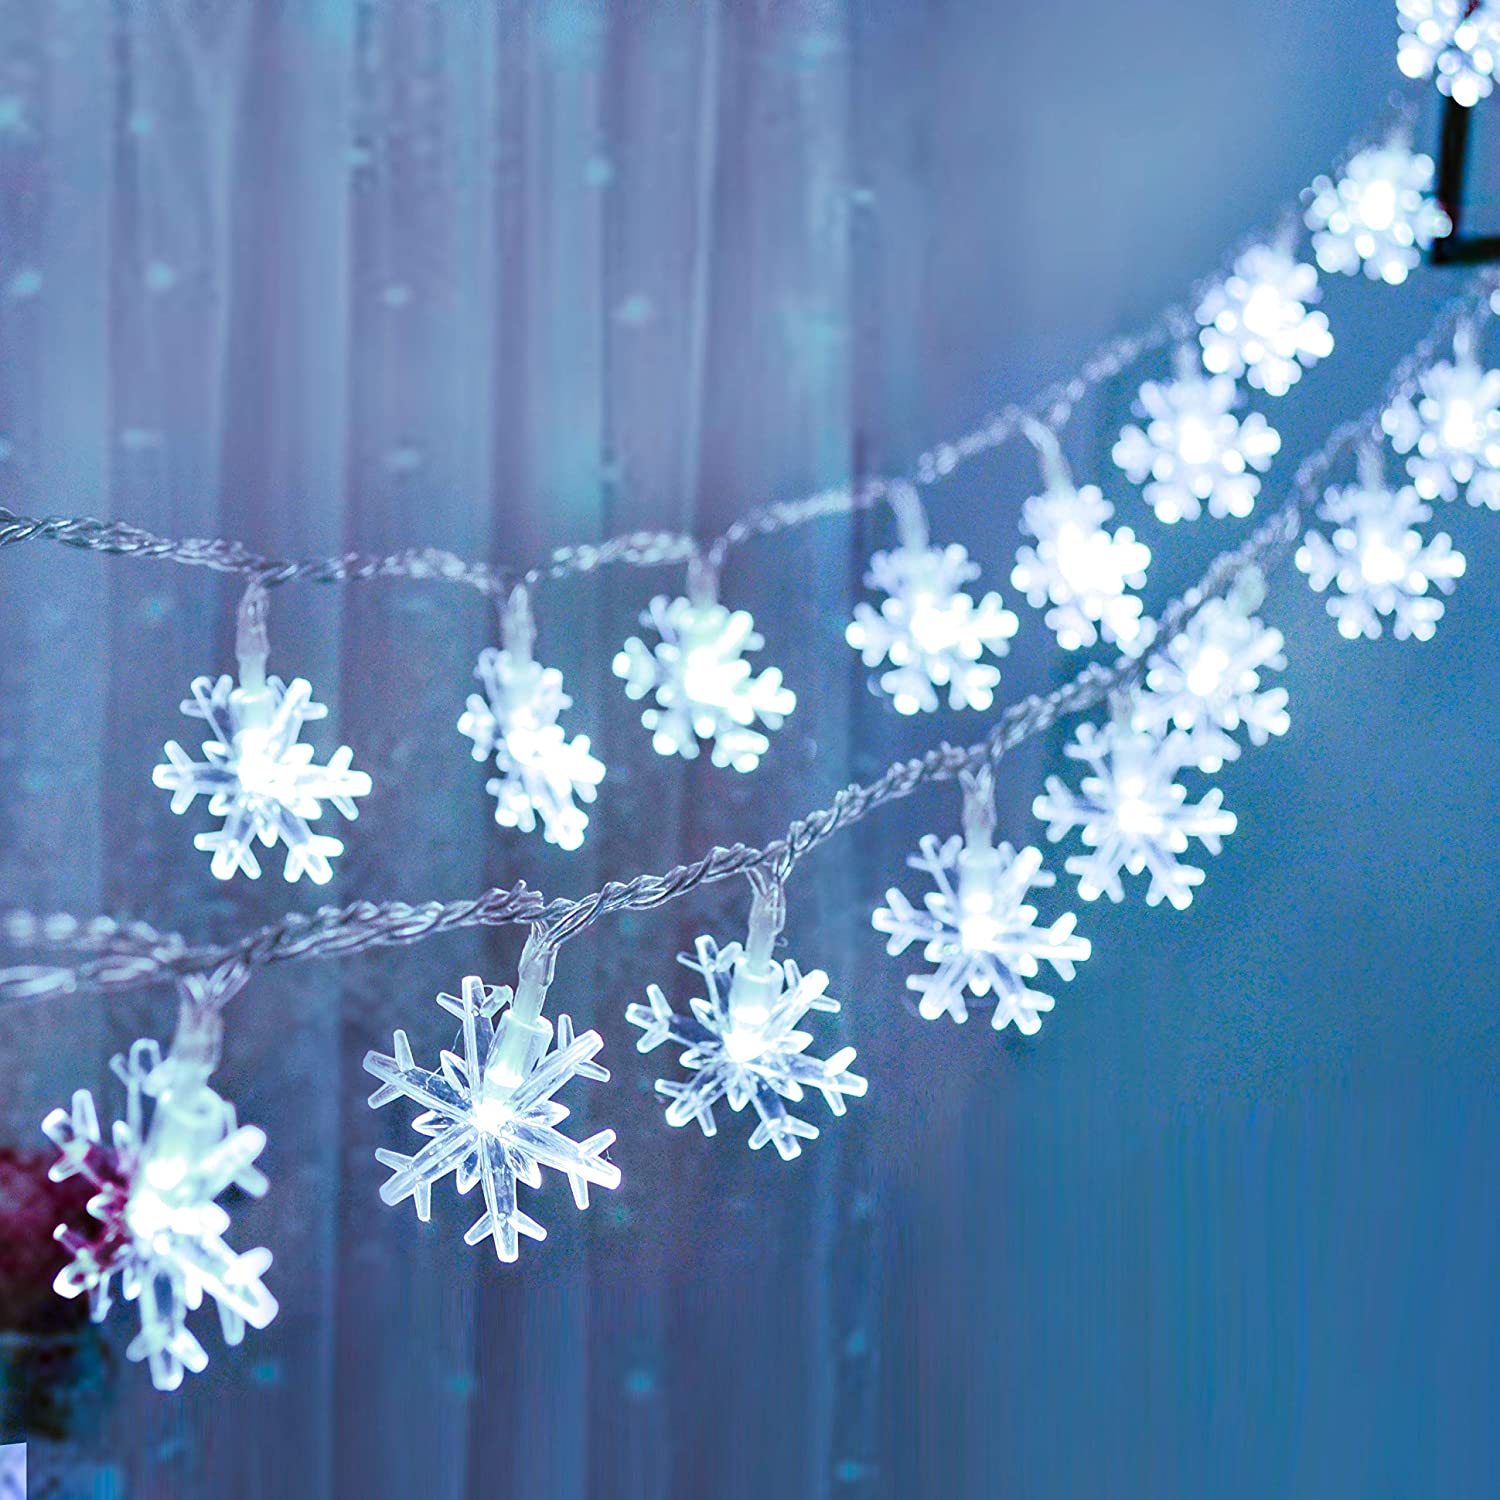 Joiedomi 2 Snowflake Fairy Lights 16ft 40 LED (White) Christmas String Lights Battery Operated Waterproof for Xmas Home Party Wedding Garden Patio Bedroom Indoor Outdoor Decor